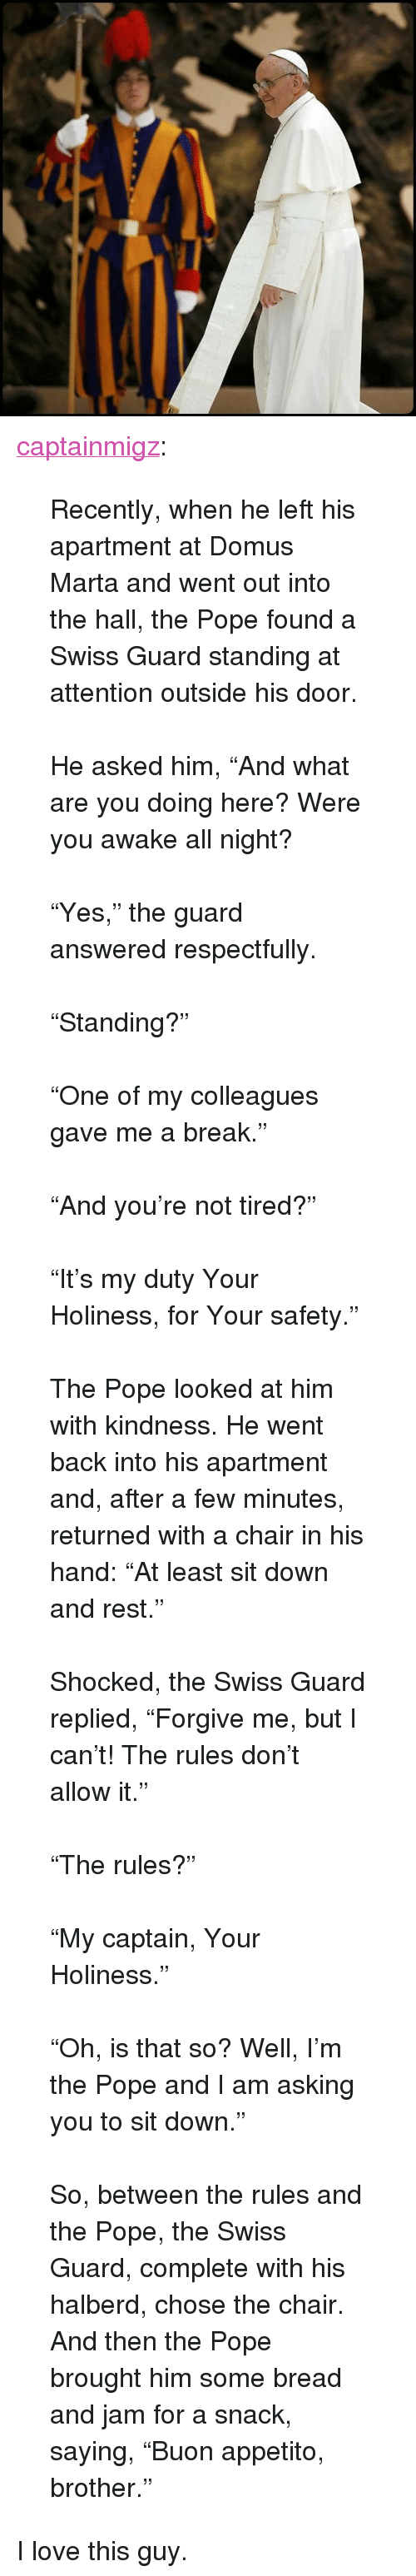 "Love, Pope Francis, and Tumblr: <p><a class=""tumblr_blog"" href=""http://captainmigz.tumblr.com/post/48033147715/recently-when-he-left-his-apartment-at-domus"">captainmigz</a>:</p> <blockquote> <p><span>Recently, when he left his apartment at Domus Marta and went out into the hall, the Pope found a Swiss Guard standing at attention outside his door.</span><br/><br/><span>He asked him, ""And what are you doing here? Were you awake all night?</span><br/><br/><span>""Yes,"" the guard answered respectfully.</span><br/><span class=""text_exposed_show""><br/>""Standing?""<br/><br/>""One of my colleagues gave me a break.""<br/><br/>""And you're not tired?""<br/><br/>""It's my duty Your Holiness, for Your safety.""<br/><br/>The Pope looked at him with kindness. He went back into his apartment and, after a few minutes, returned with a chair in his hand: ""At least sit down and rest.""<br/><br/>Shocked, the Swiss Guard replied, ""Forgive me, but I can't! The rules don't allow it.""<br/><br/>""The rules?""<br/><br/>""My captain, Your Holiness.""<br/><br/>""Oh, is that so? Well, I'm the Pope and I am asking you to sit down.""<br/><br/>So, between the rules and the Pope, the Swiss Guard, complete with his halberd, chose the chair. And then the Pope brought him some bread and jam for a snack, saying, ""Buon appetito, brother.""</span></p> </blockquote> <p>I love this guy. </p>"